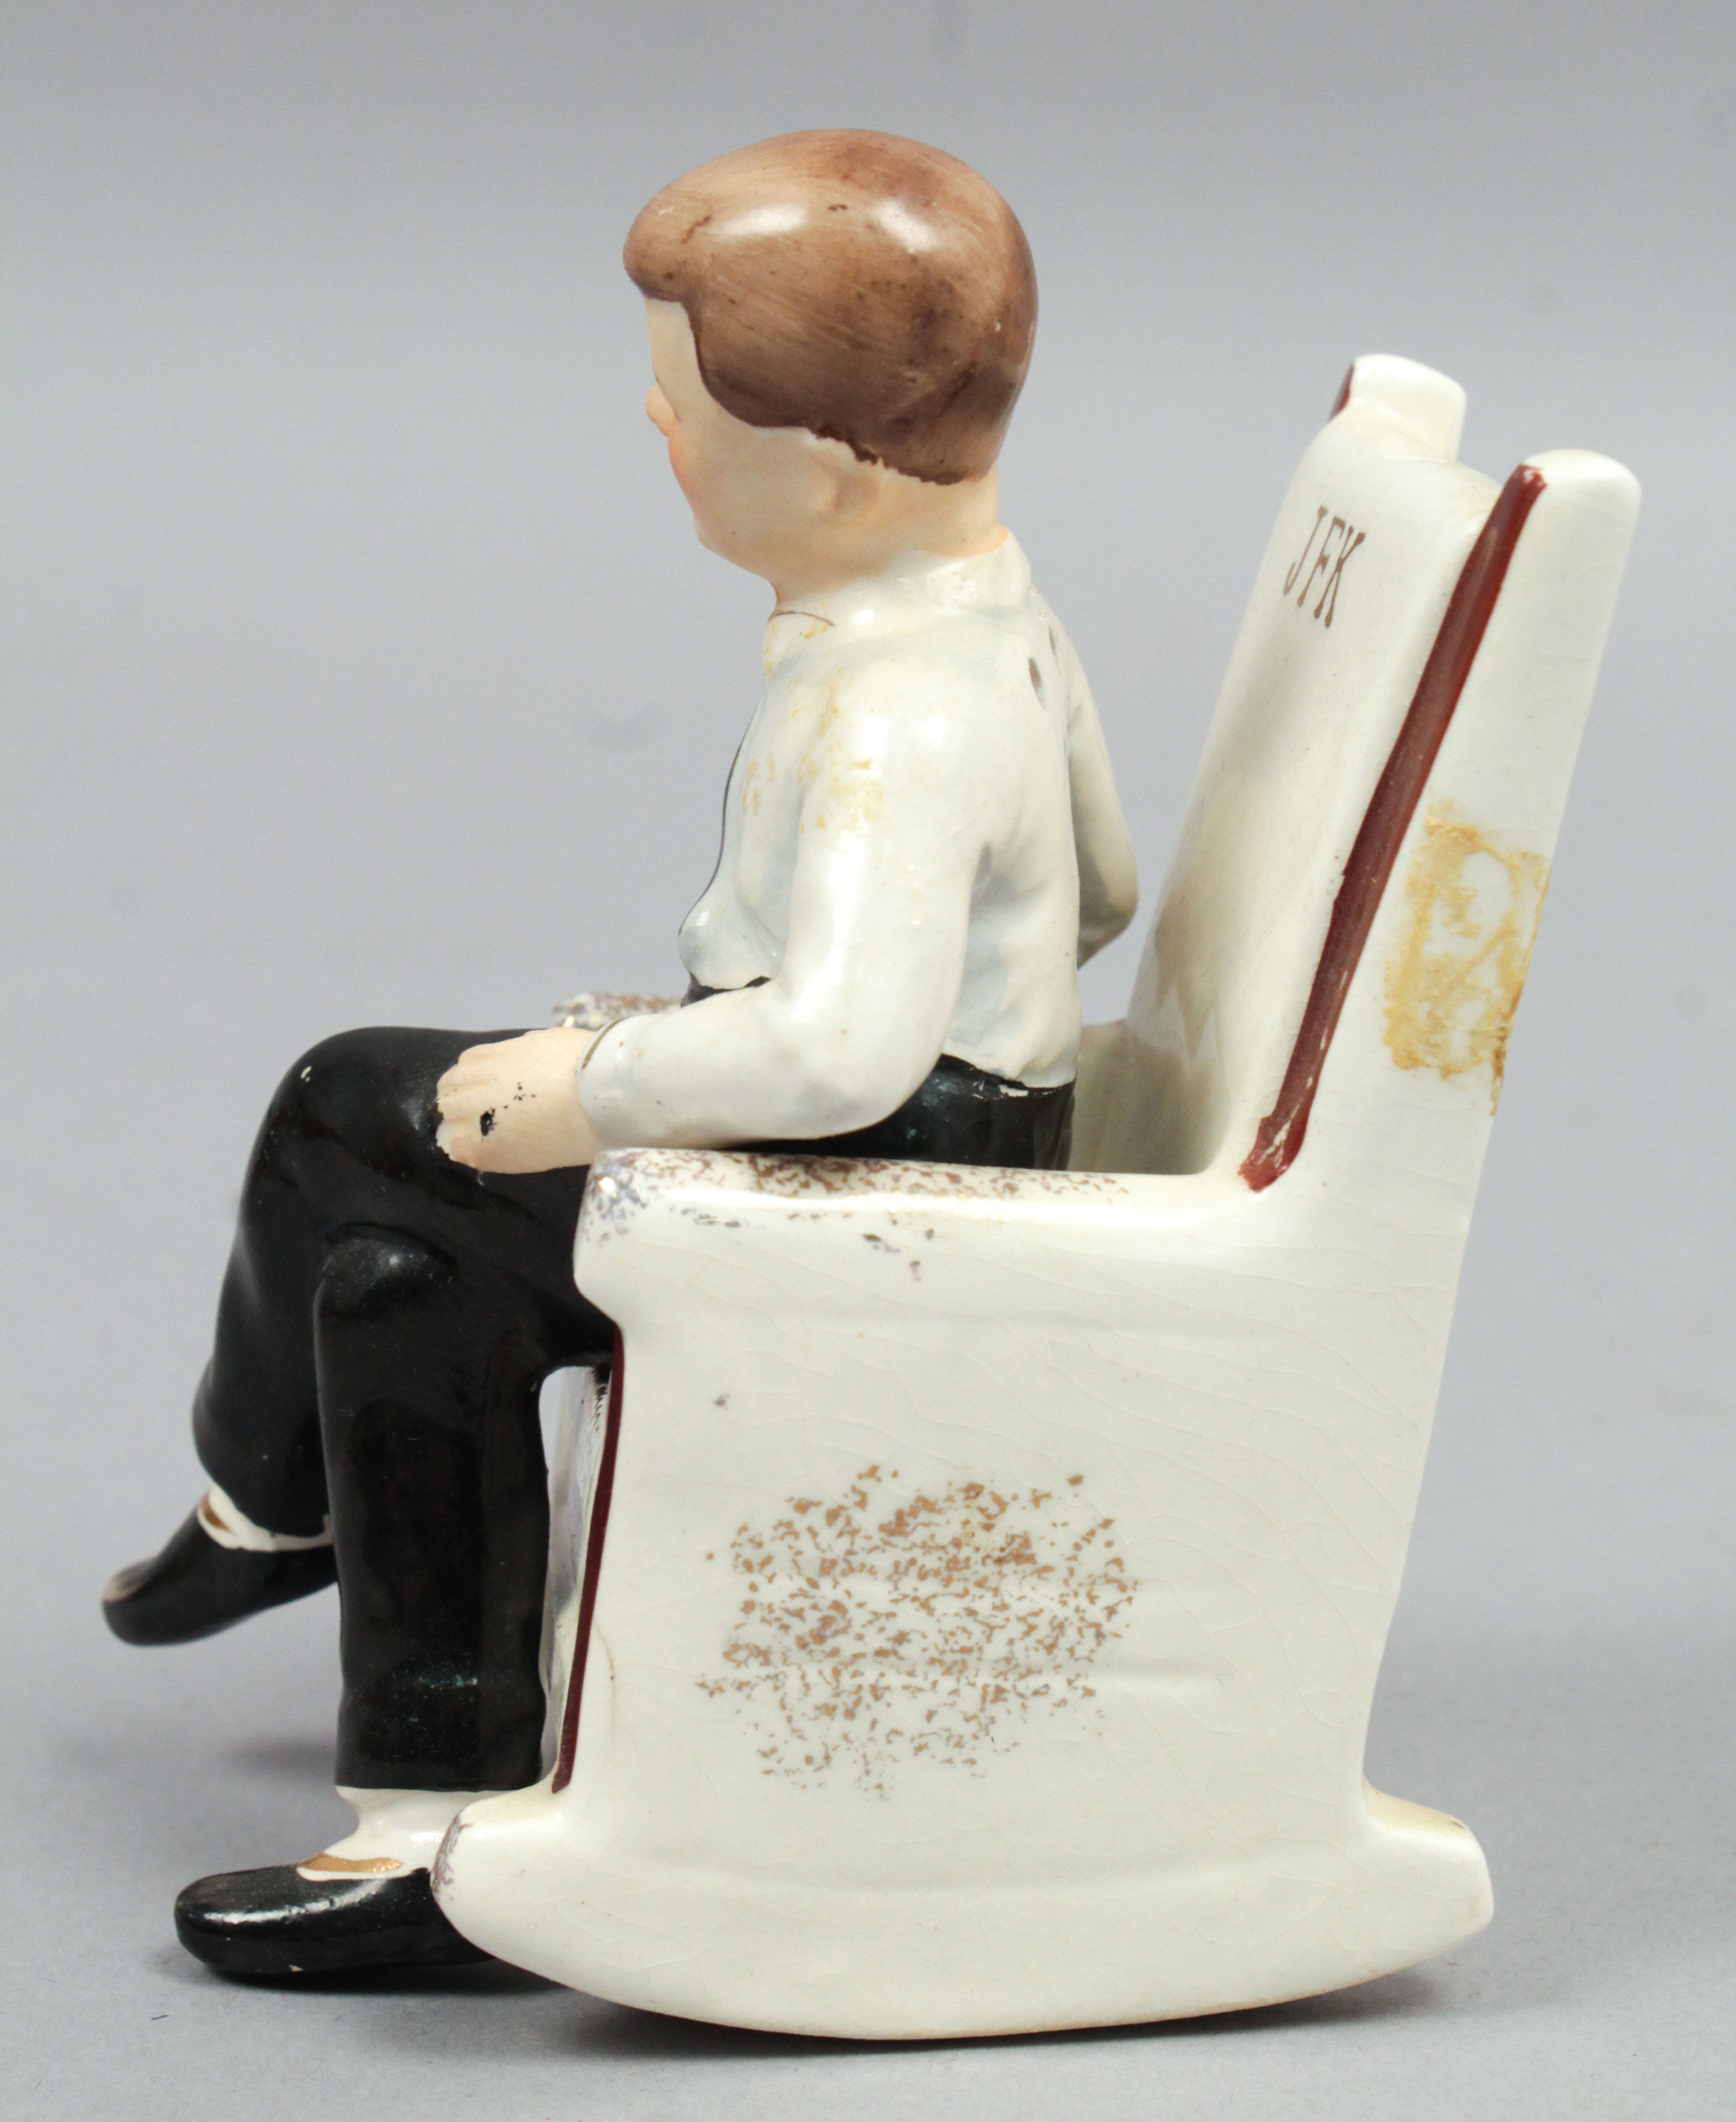 kennedy rocking chair grey chevron vintage 1962 japanese jfk president in